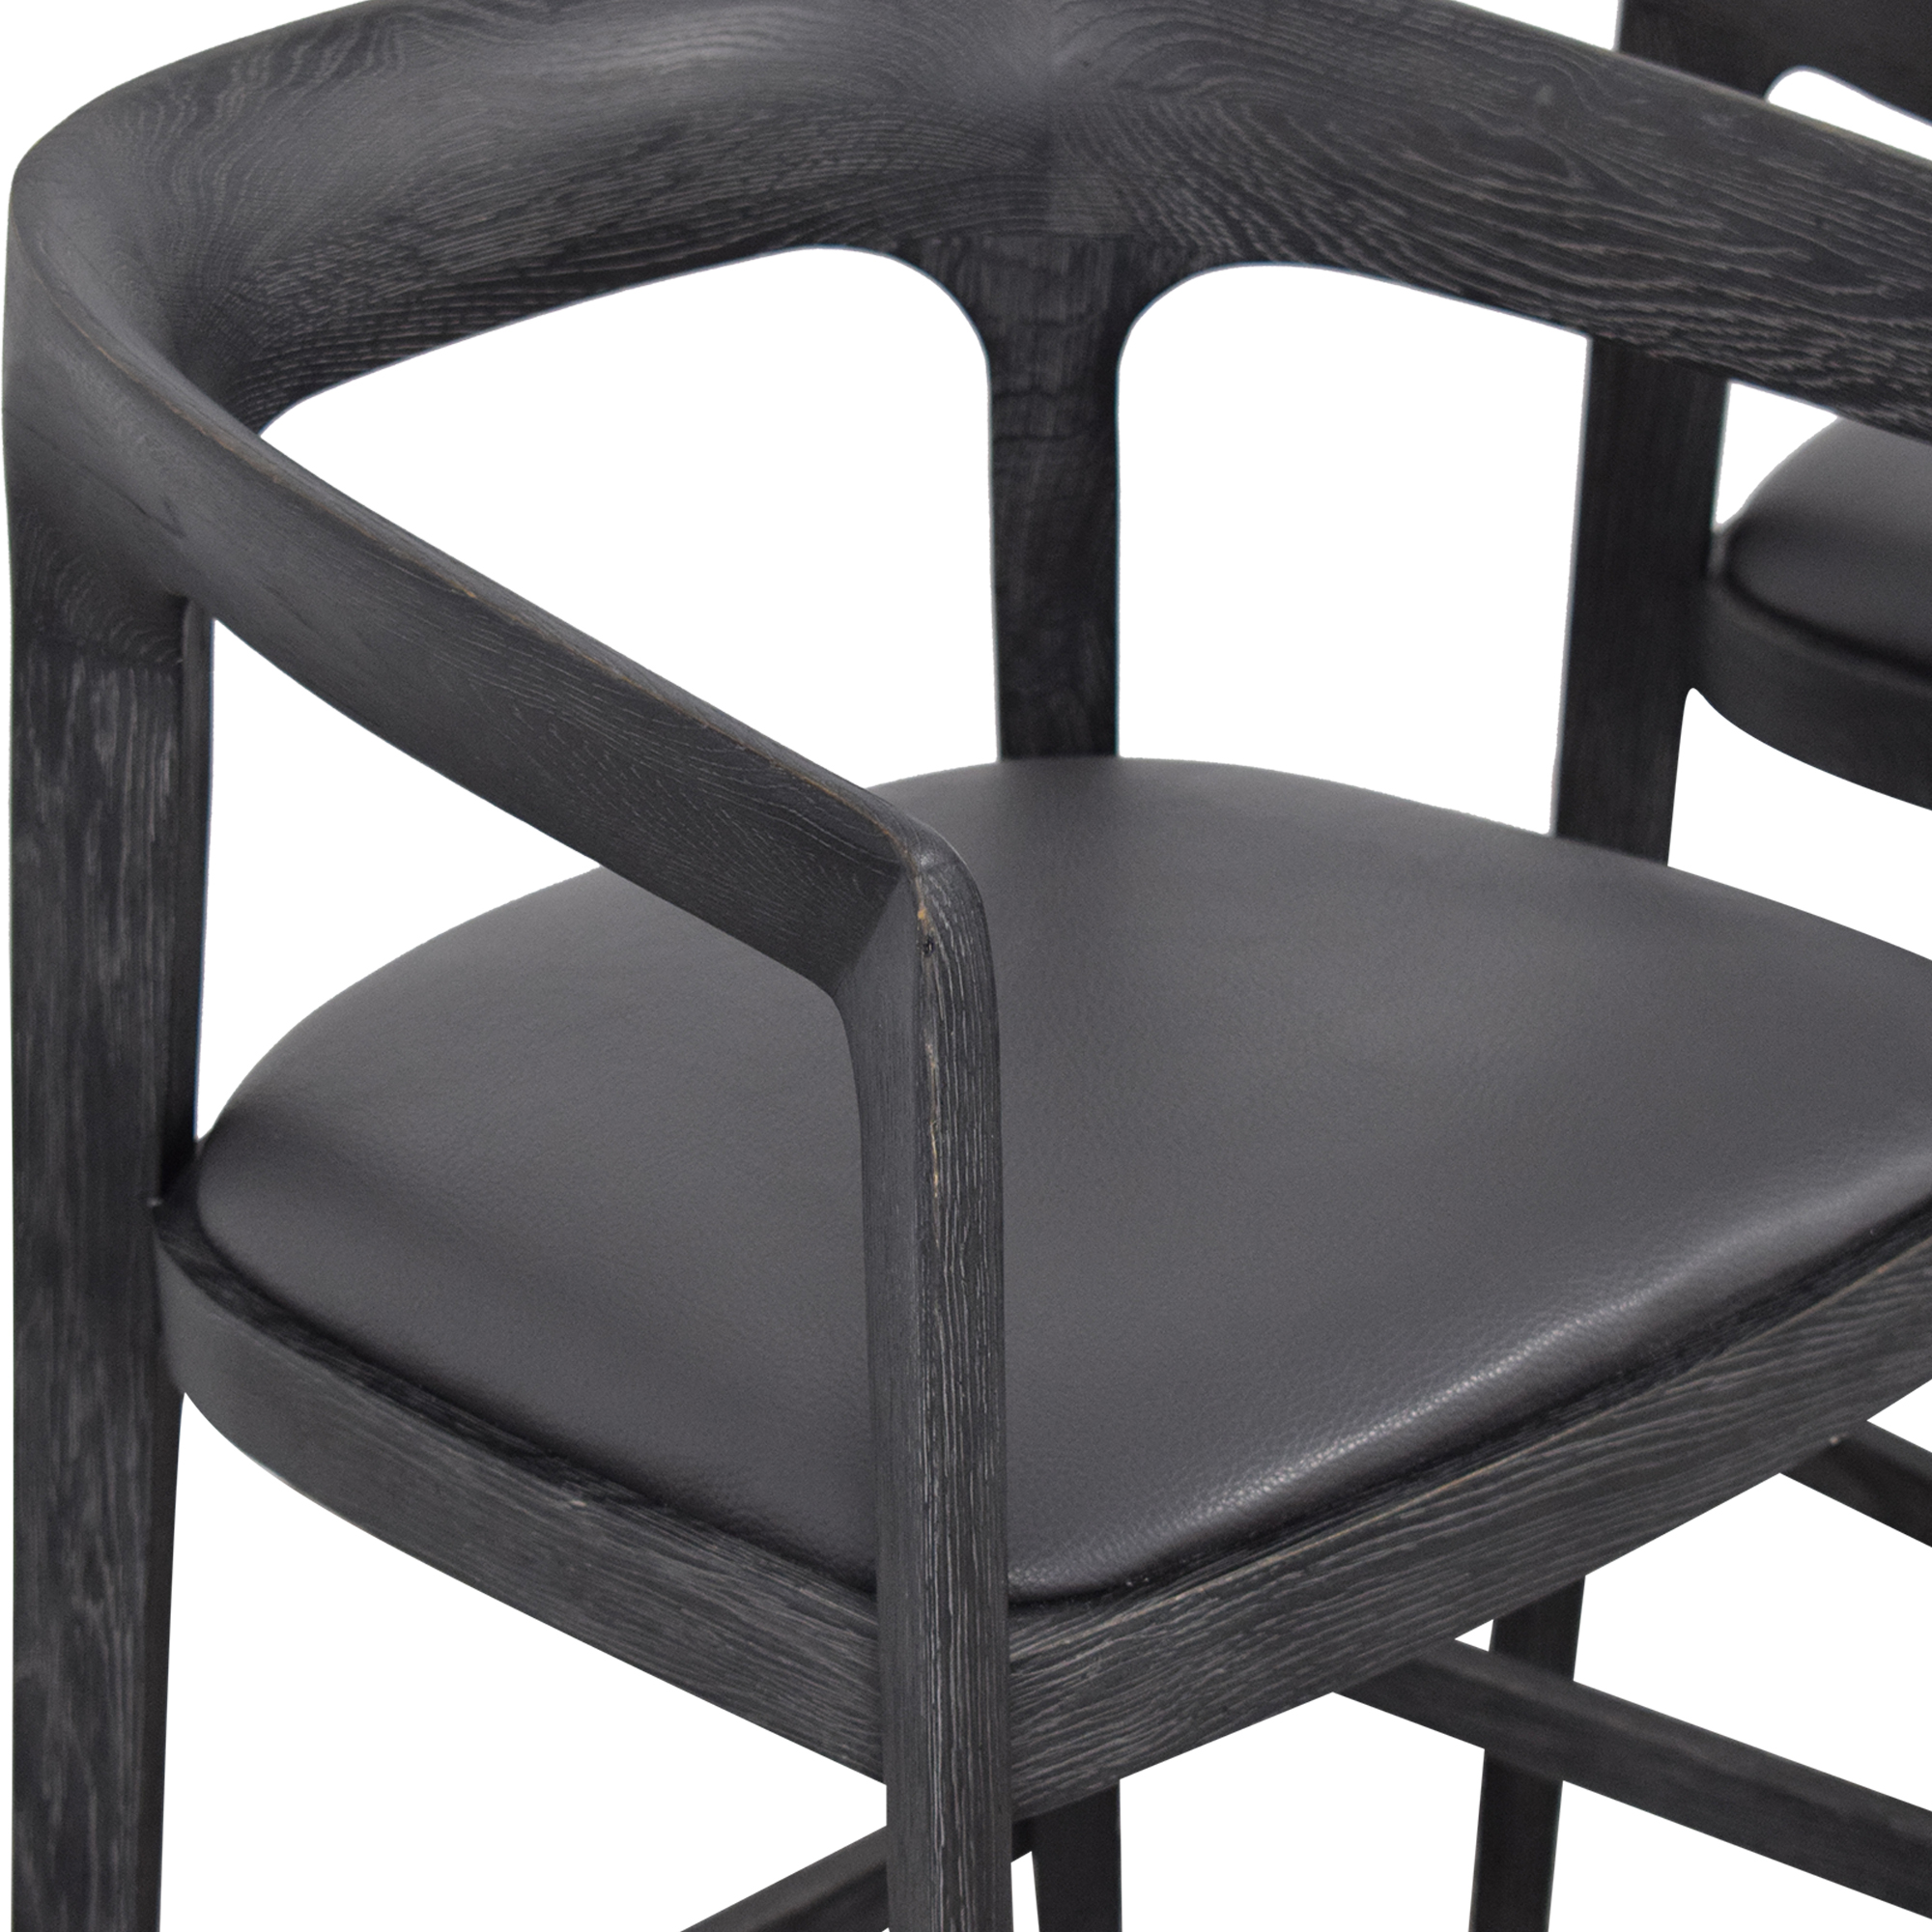 Interlude Home Interlude Home Kendra Counter Stools nyc